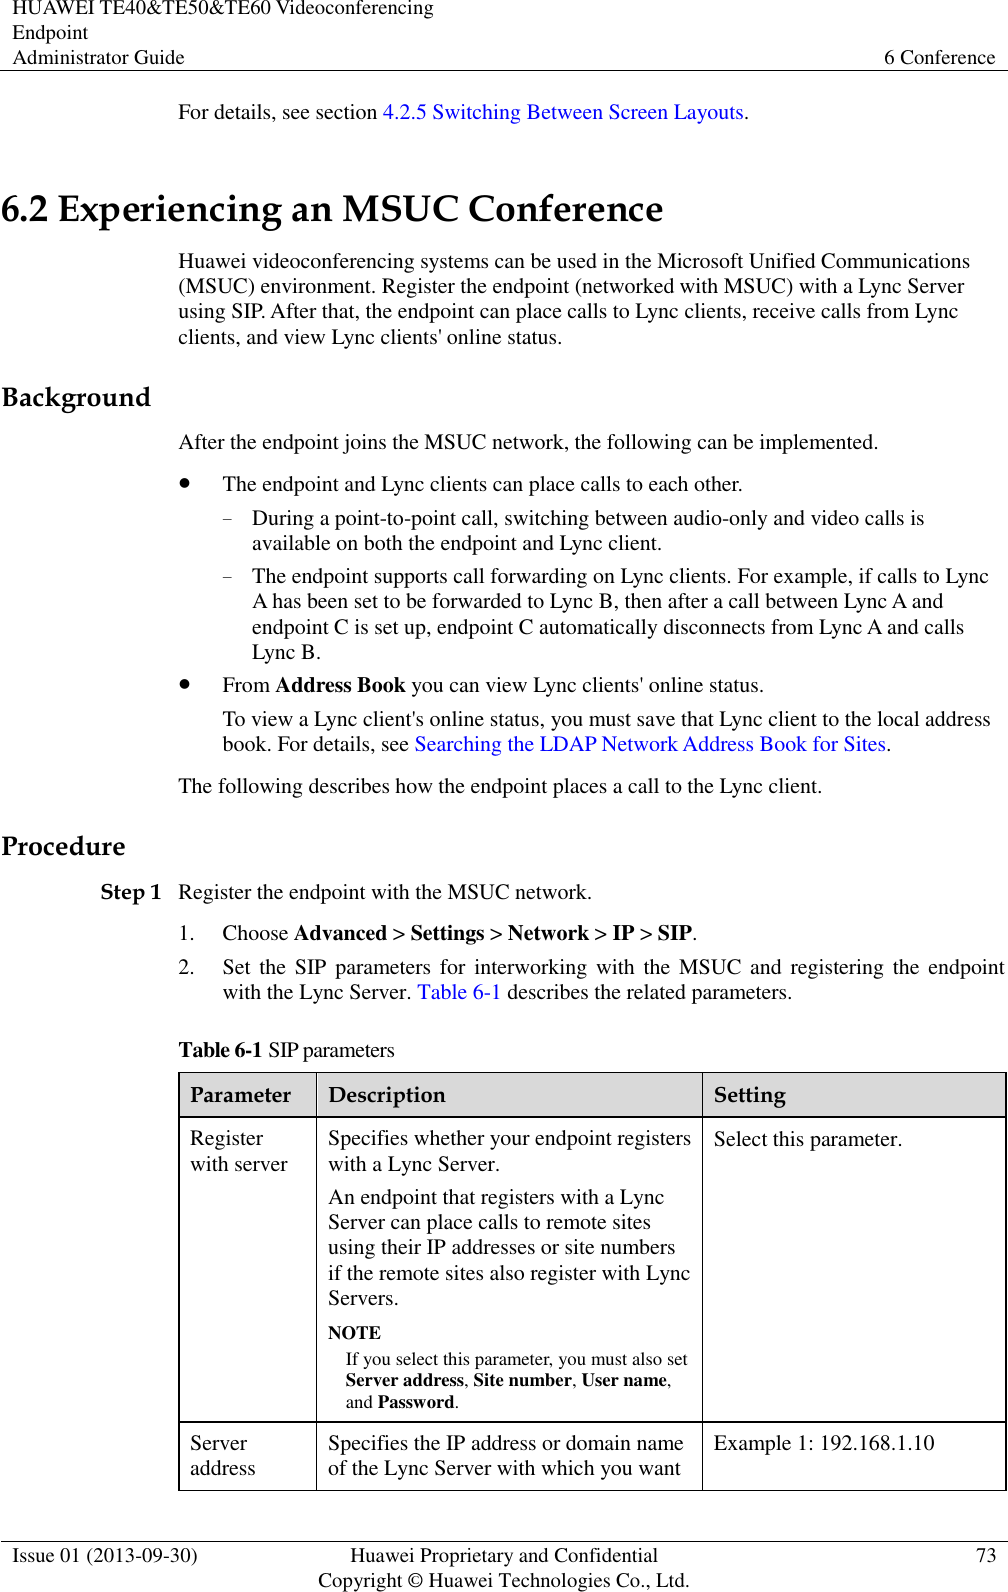 cisco amp for endpoints user guide